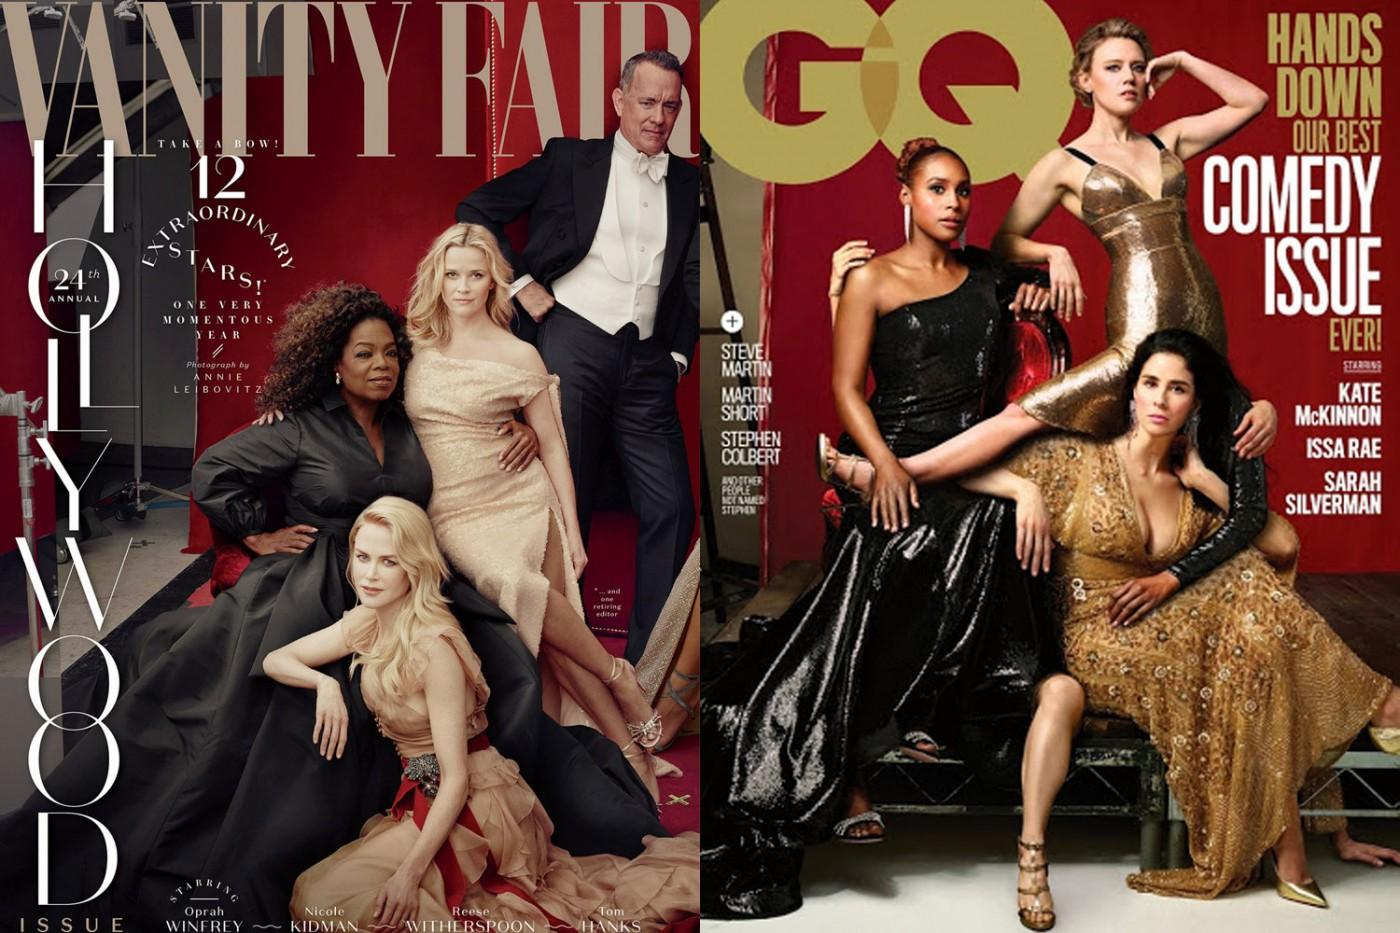 GQ mocks Vanity Fair's Photoshop job with new cover